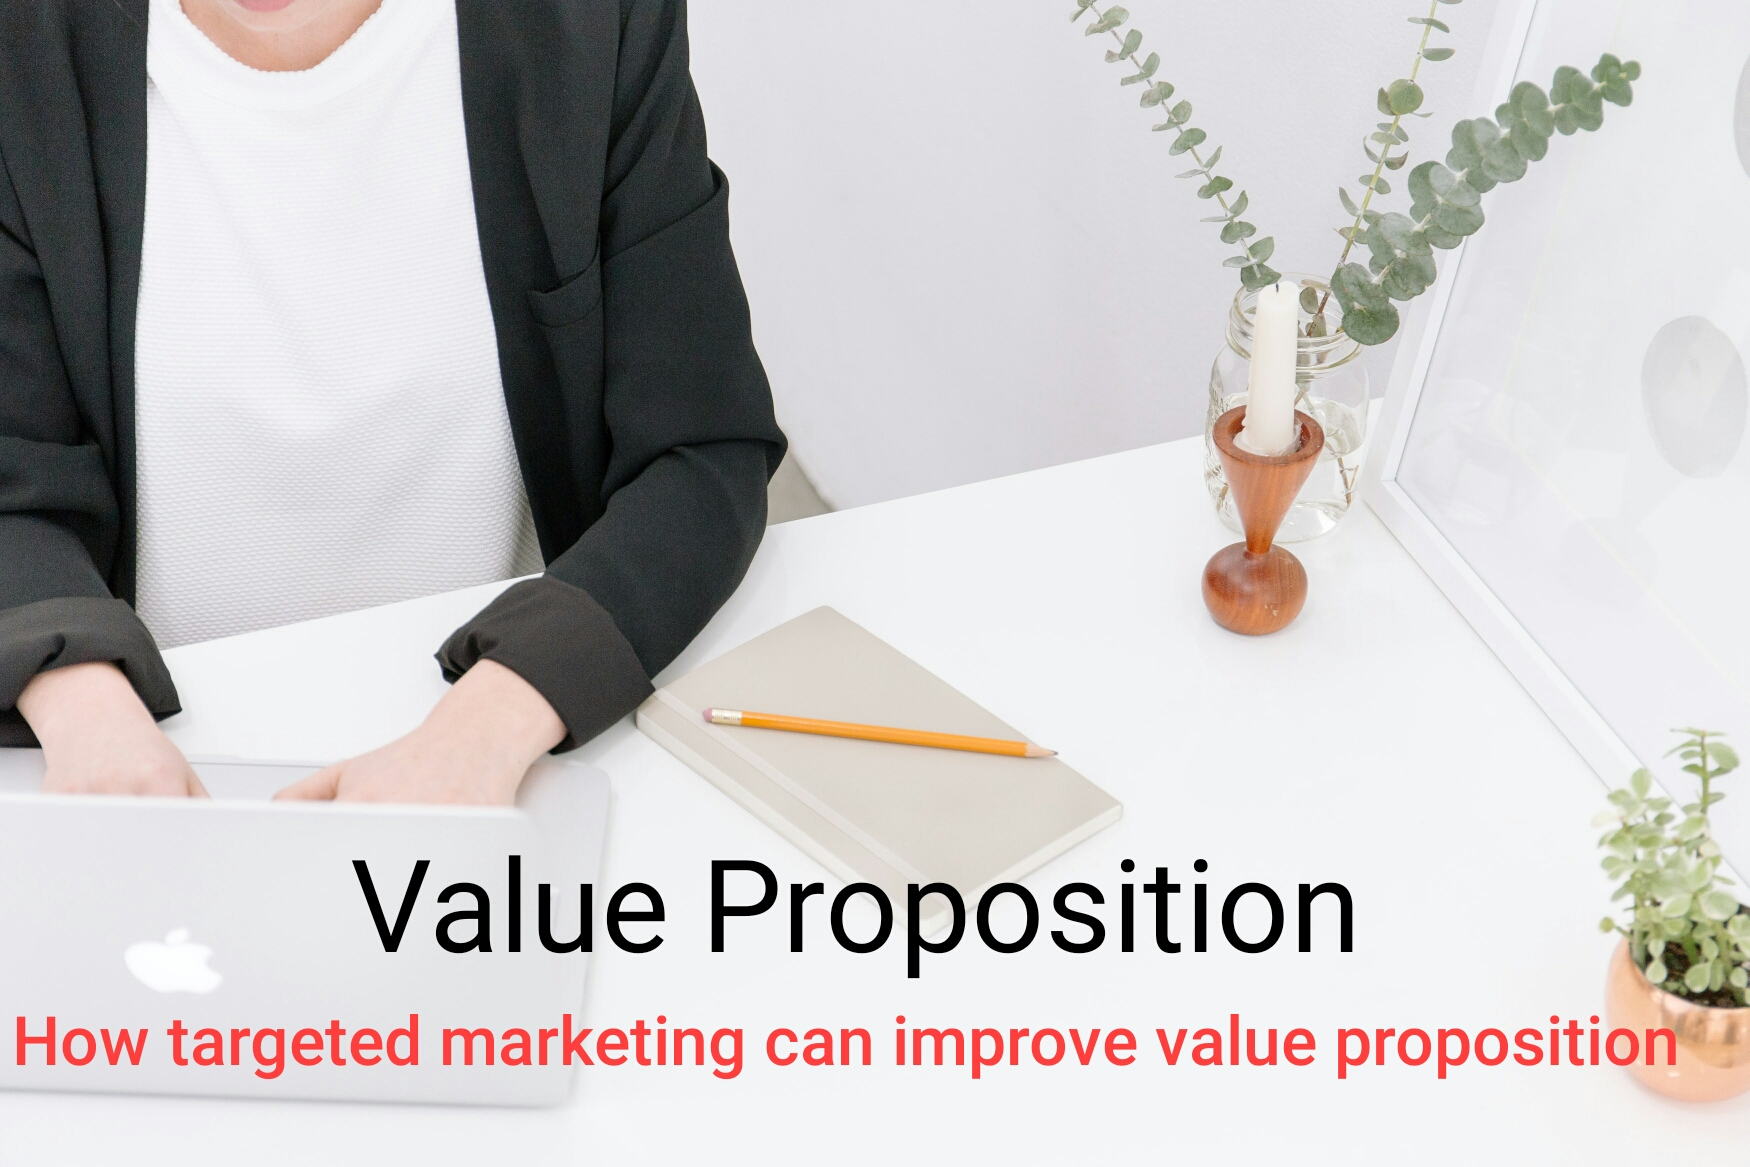 How targeted marketing can improve value proposition